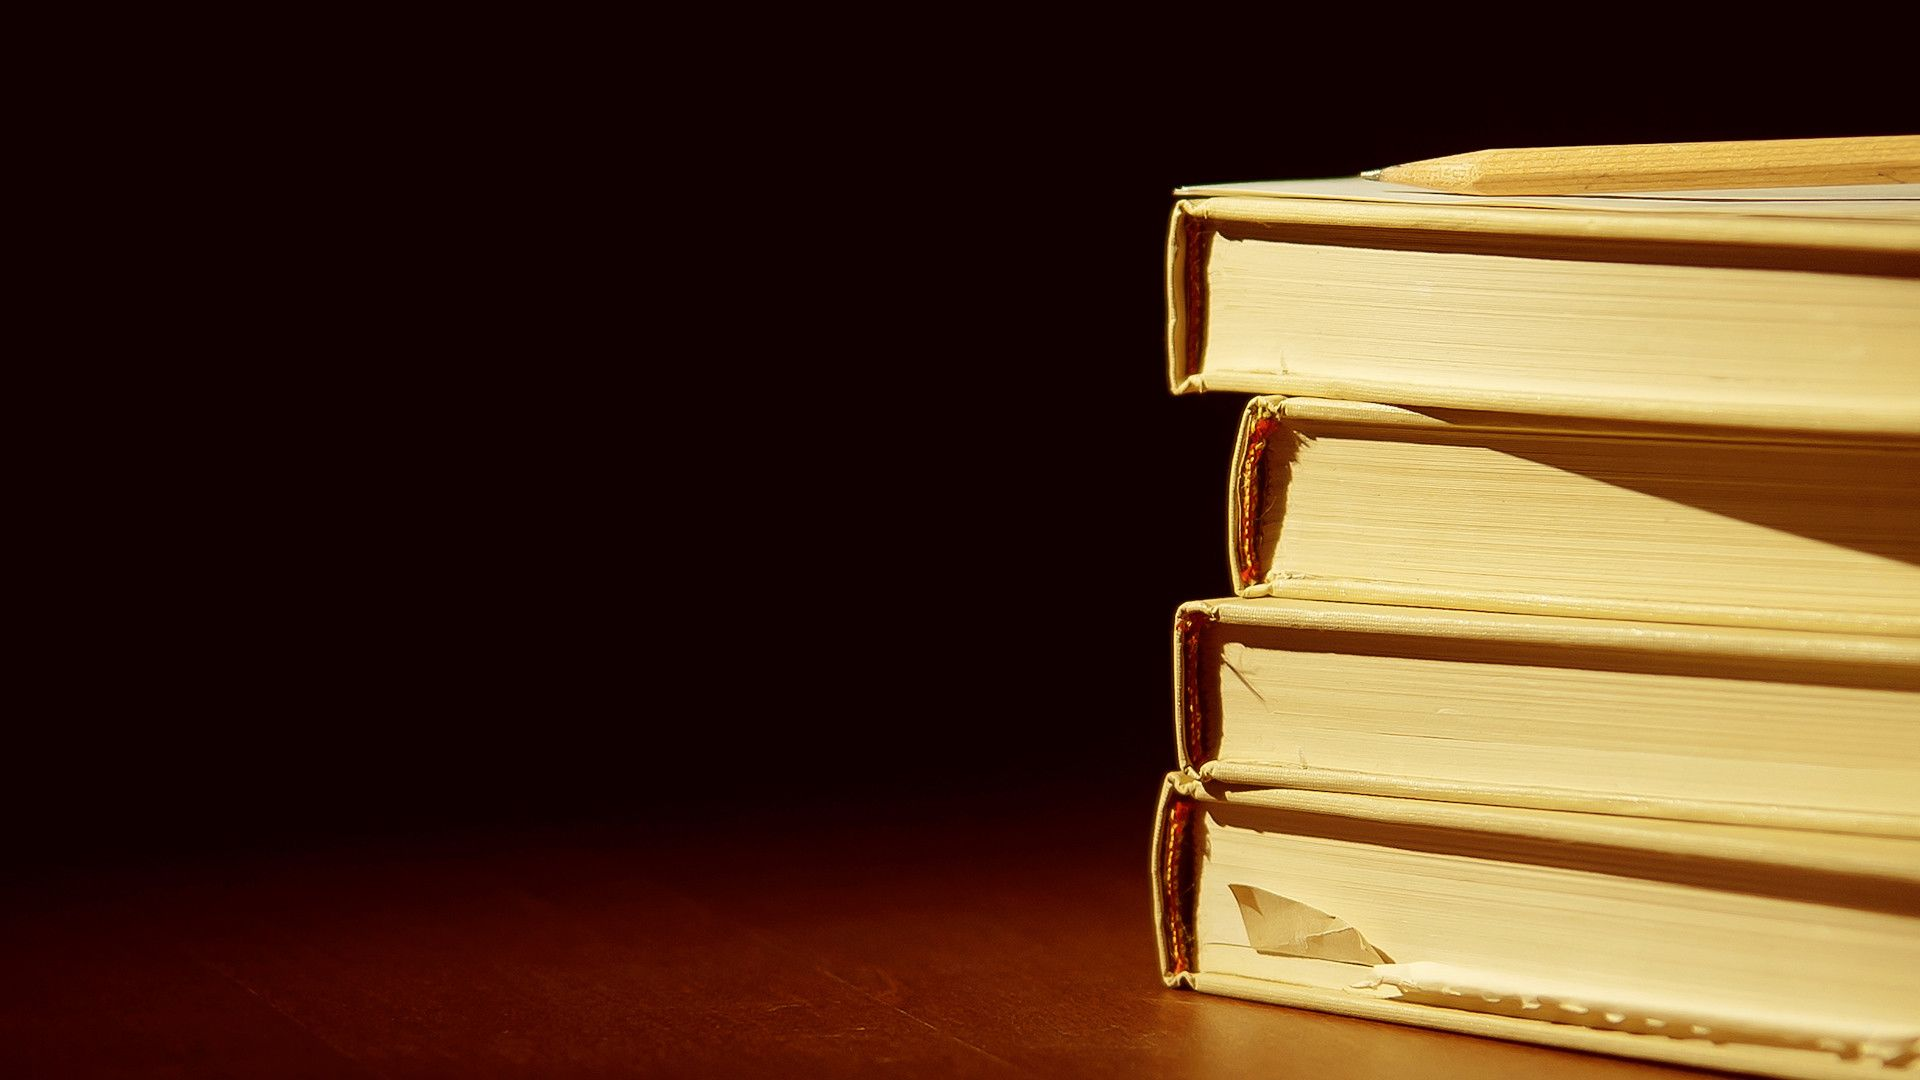 Books Hd Wallpapers Top Free Books Hd Backgrounds Wallpaperaccess